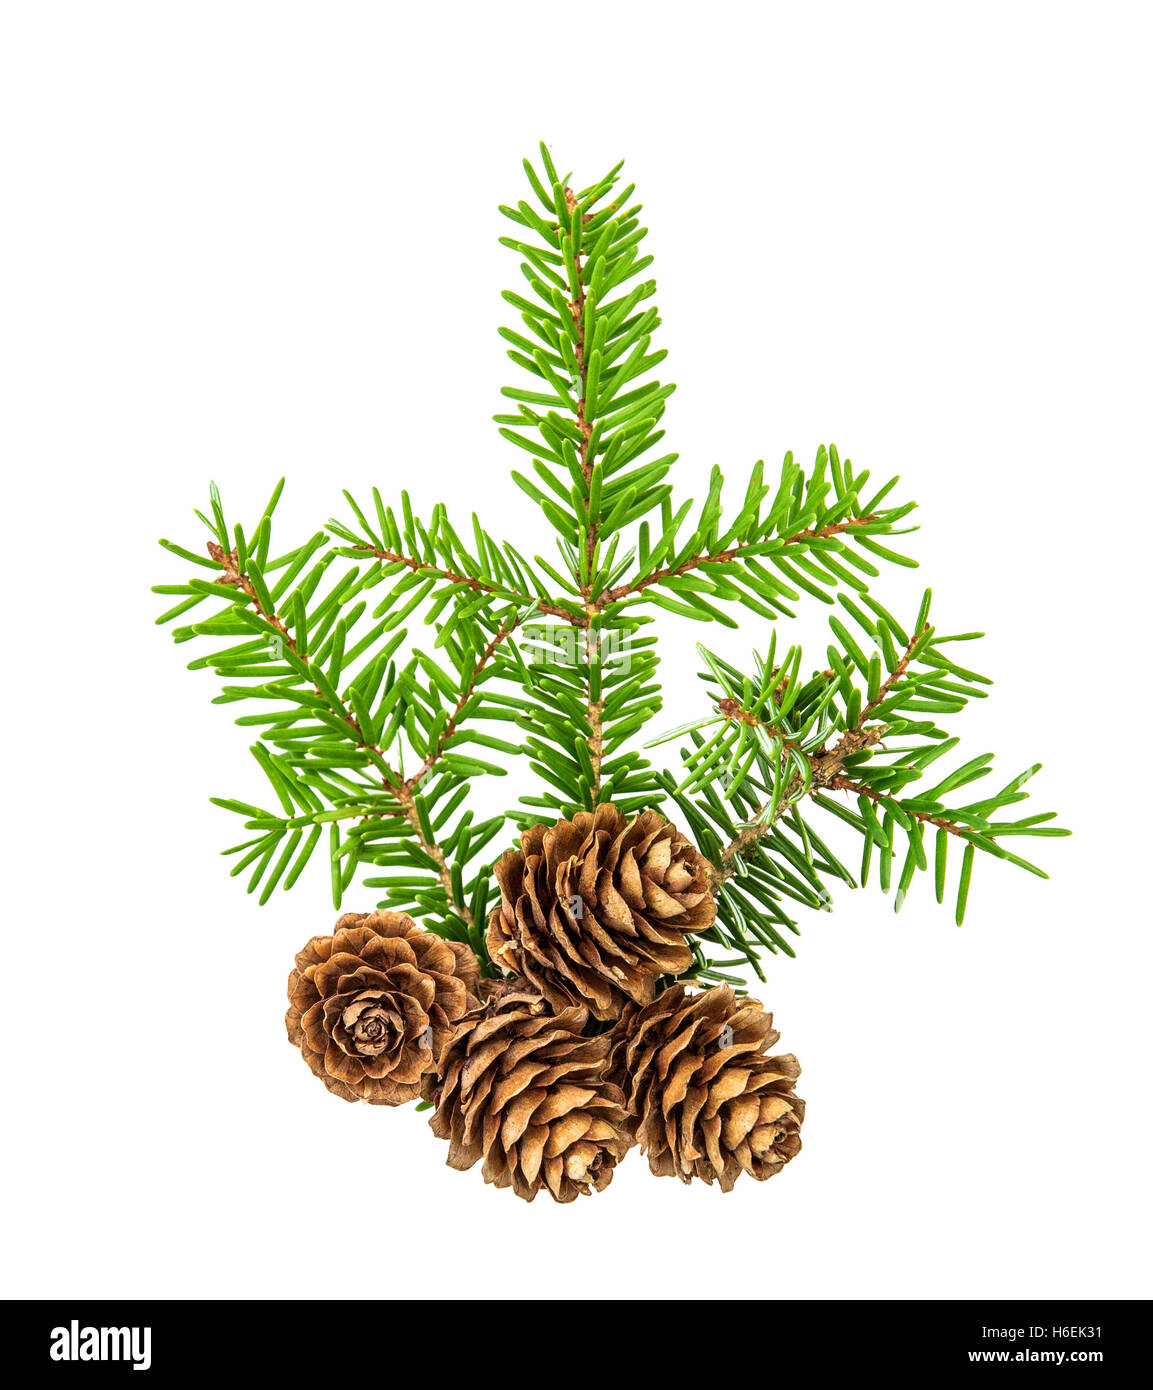 Christmas tree branches isolated on white background. Pine sprig with spruces. Fresh green fir - Stock Image